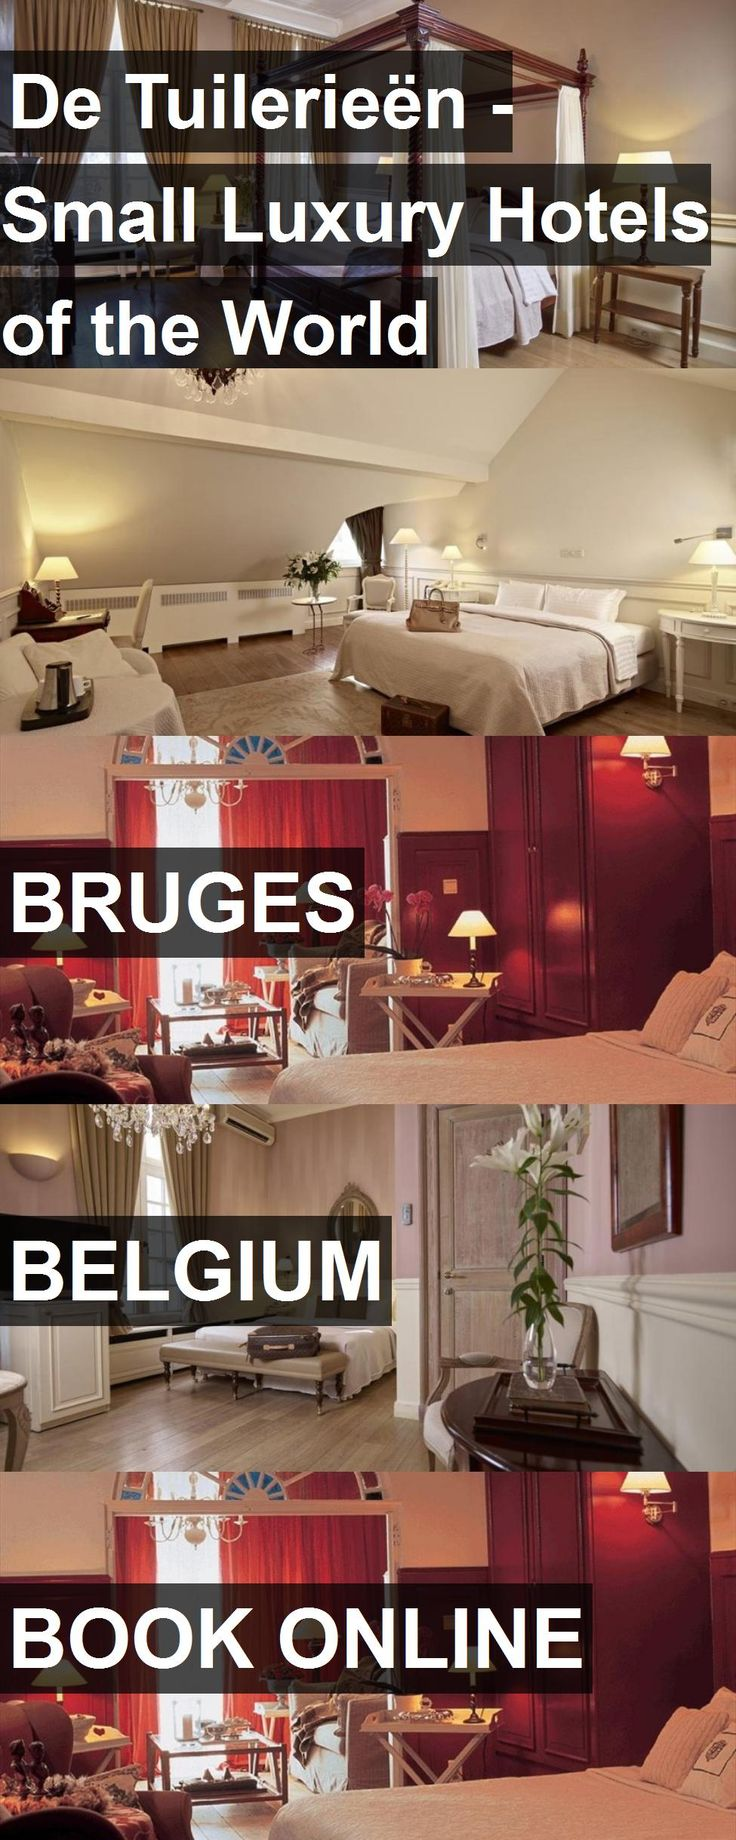 De Tuilerieën - Small Luxury Hotels of the World in Bruges, Belgium. For more information, photos, reviews and best prices please follow the link. #Belgium #Bruges #travel #vacation #hotel